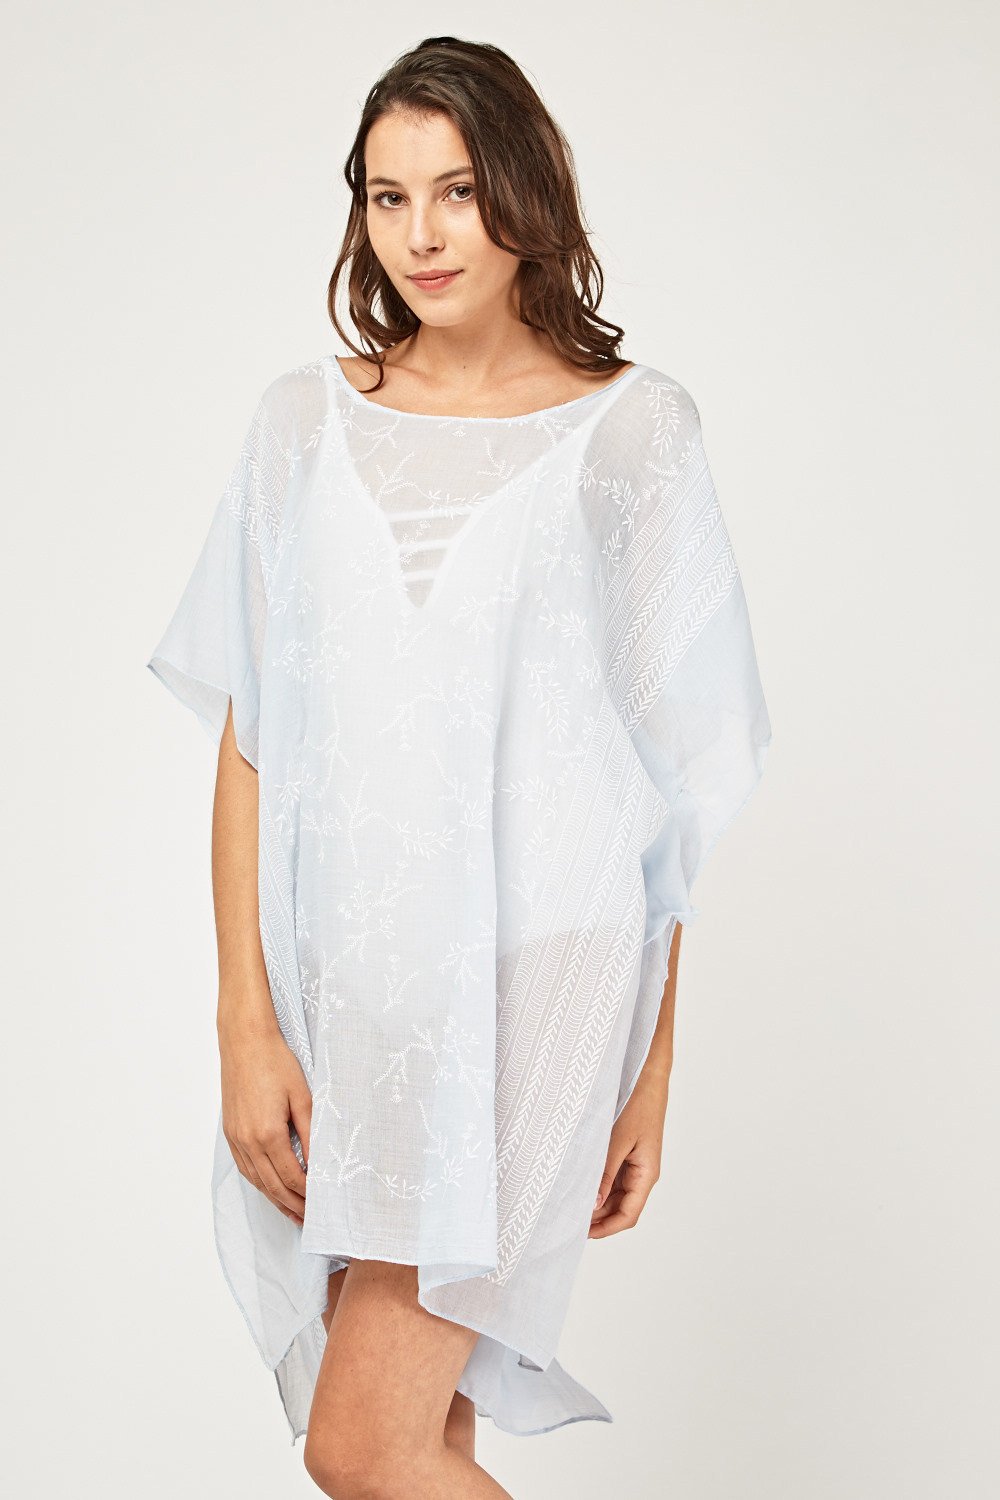 0f1f7ed49 Embroidered Sheer Beach Cover Up - Just £5